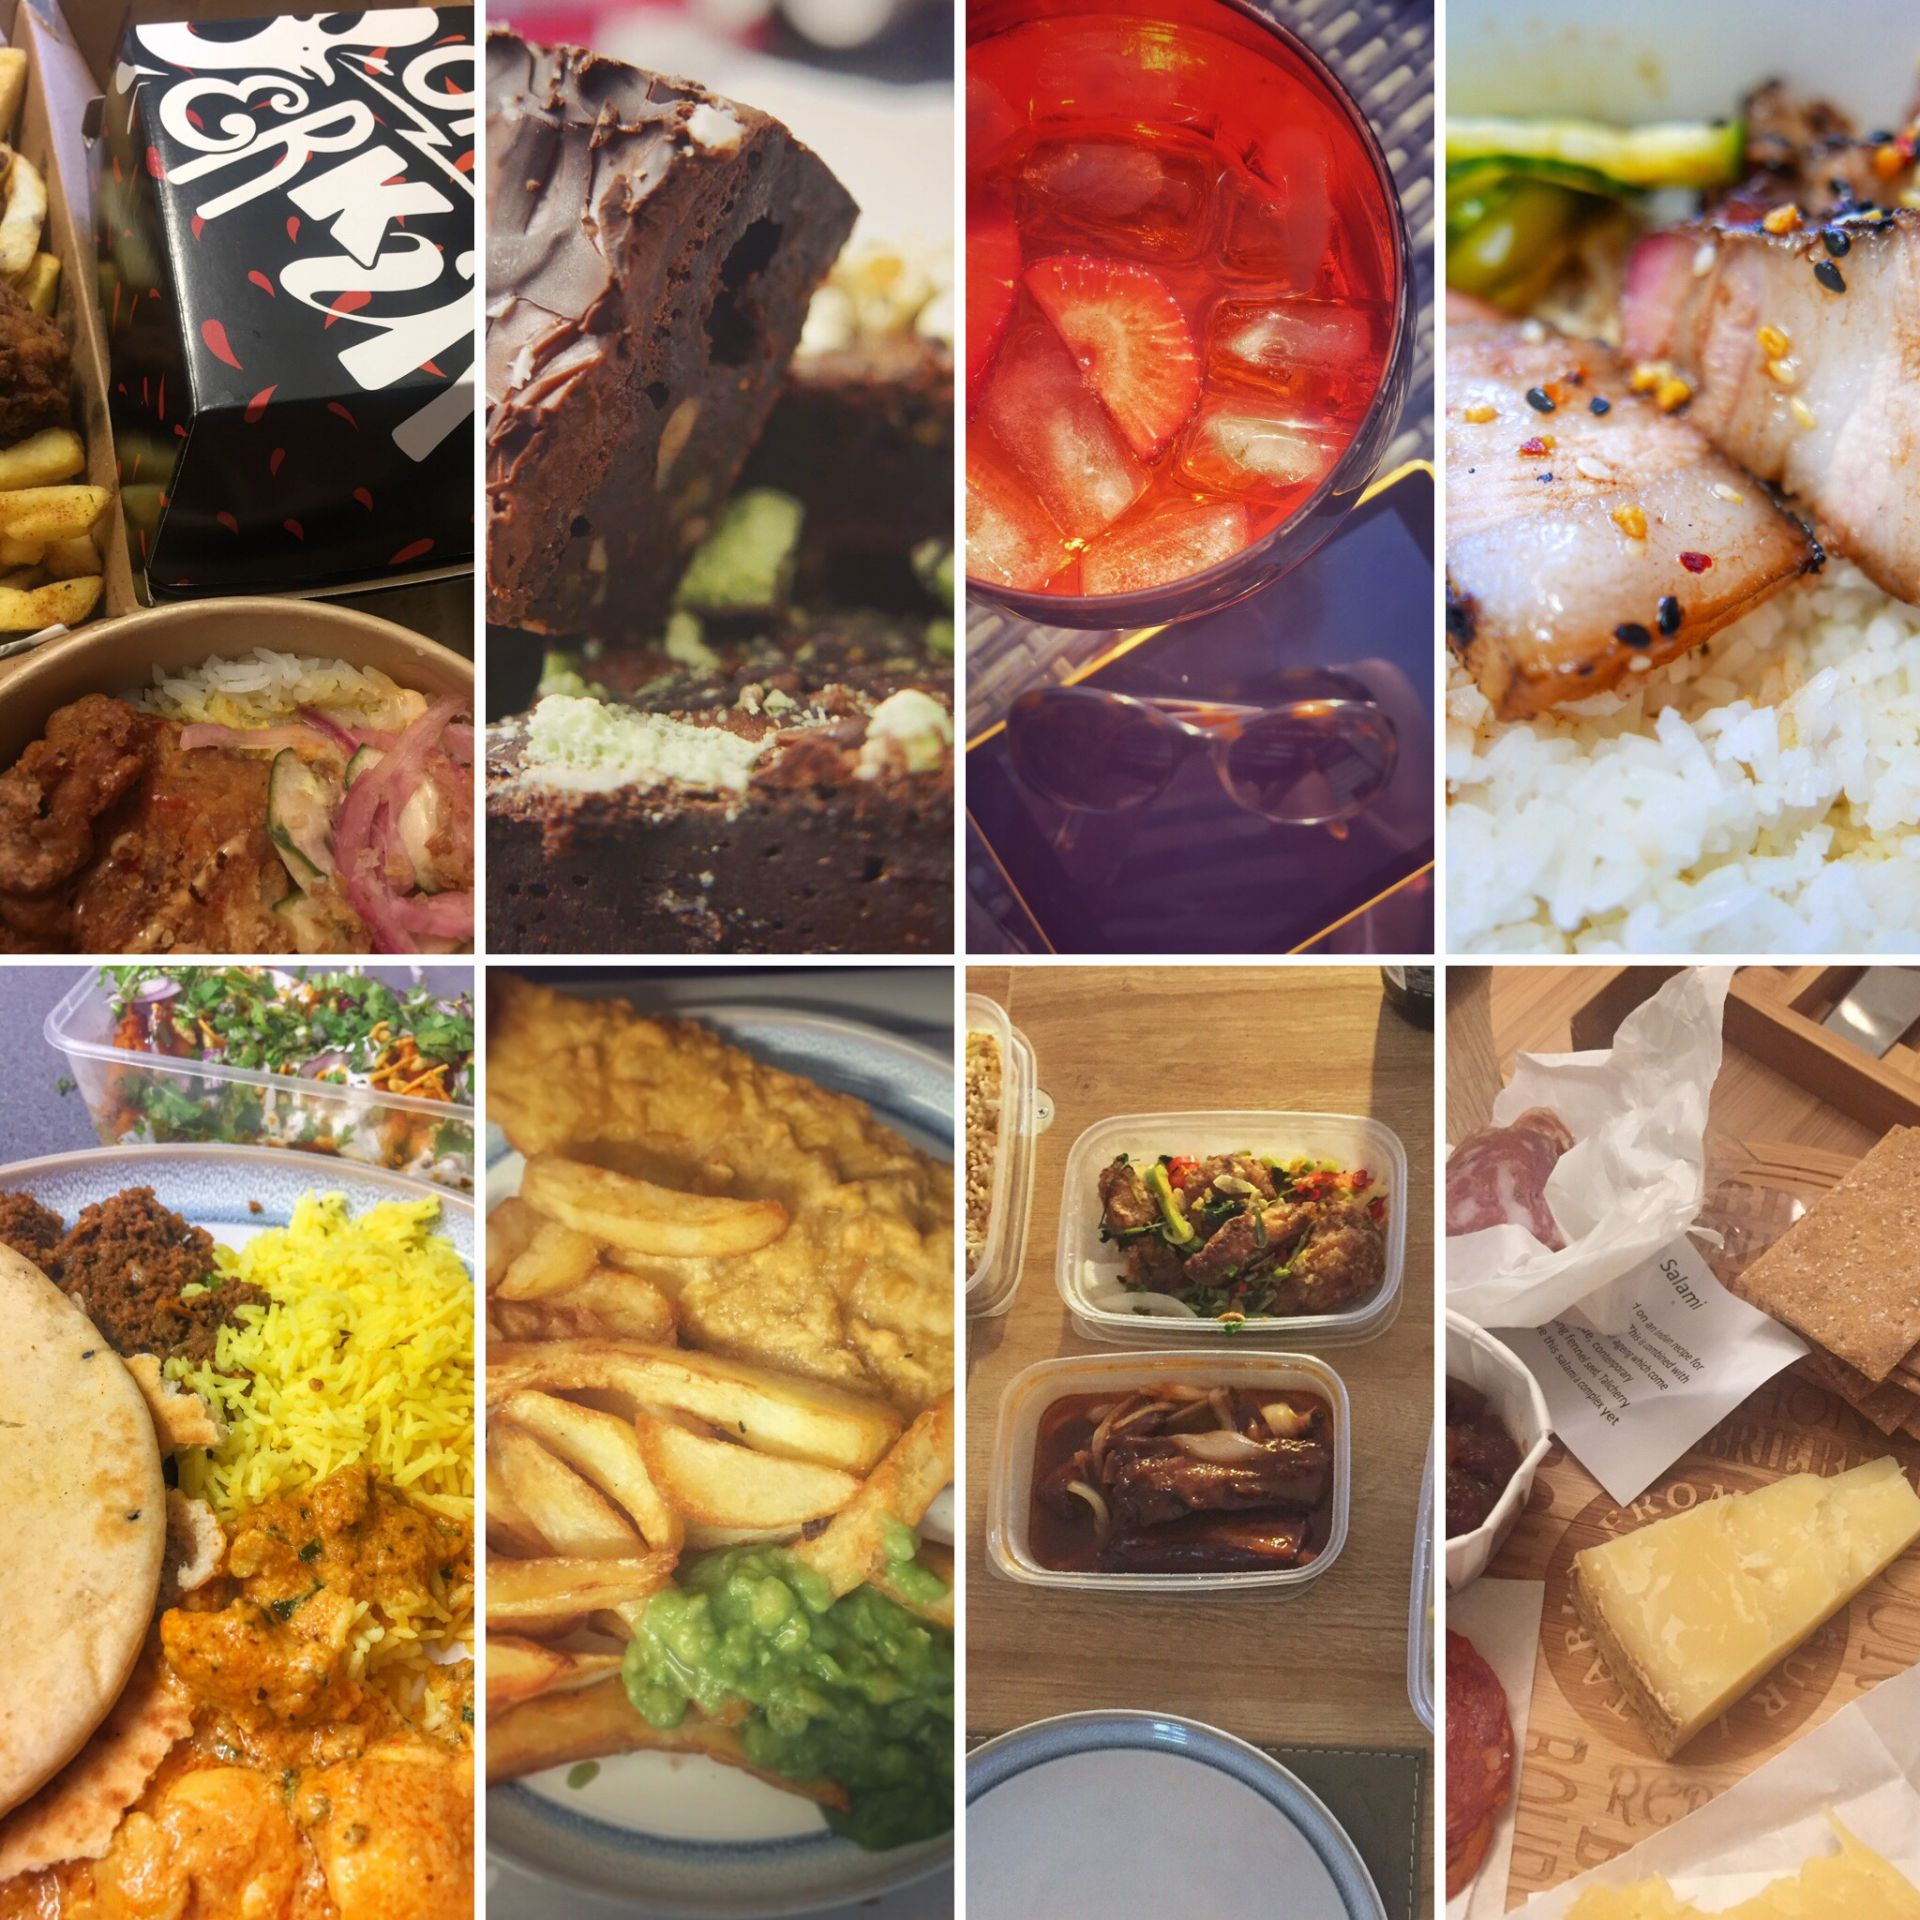 Collage of food and drink